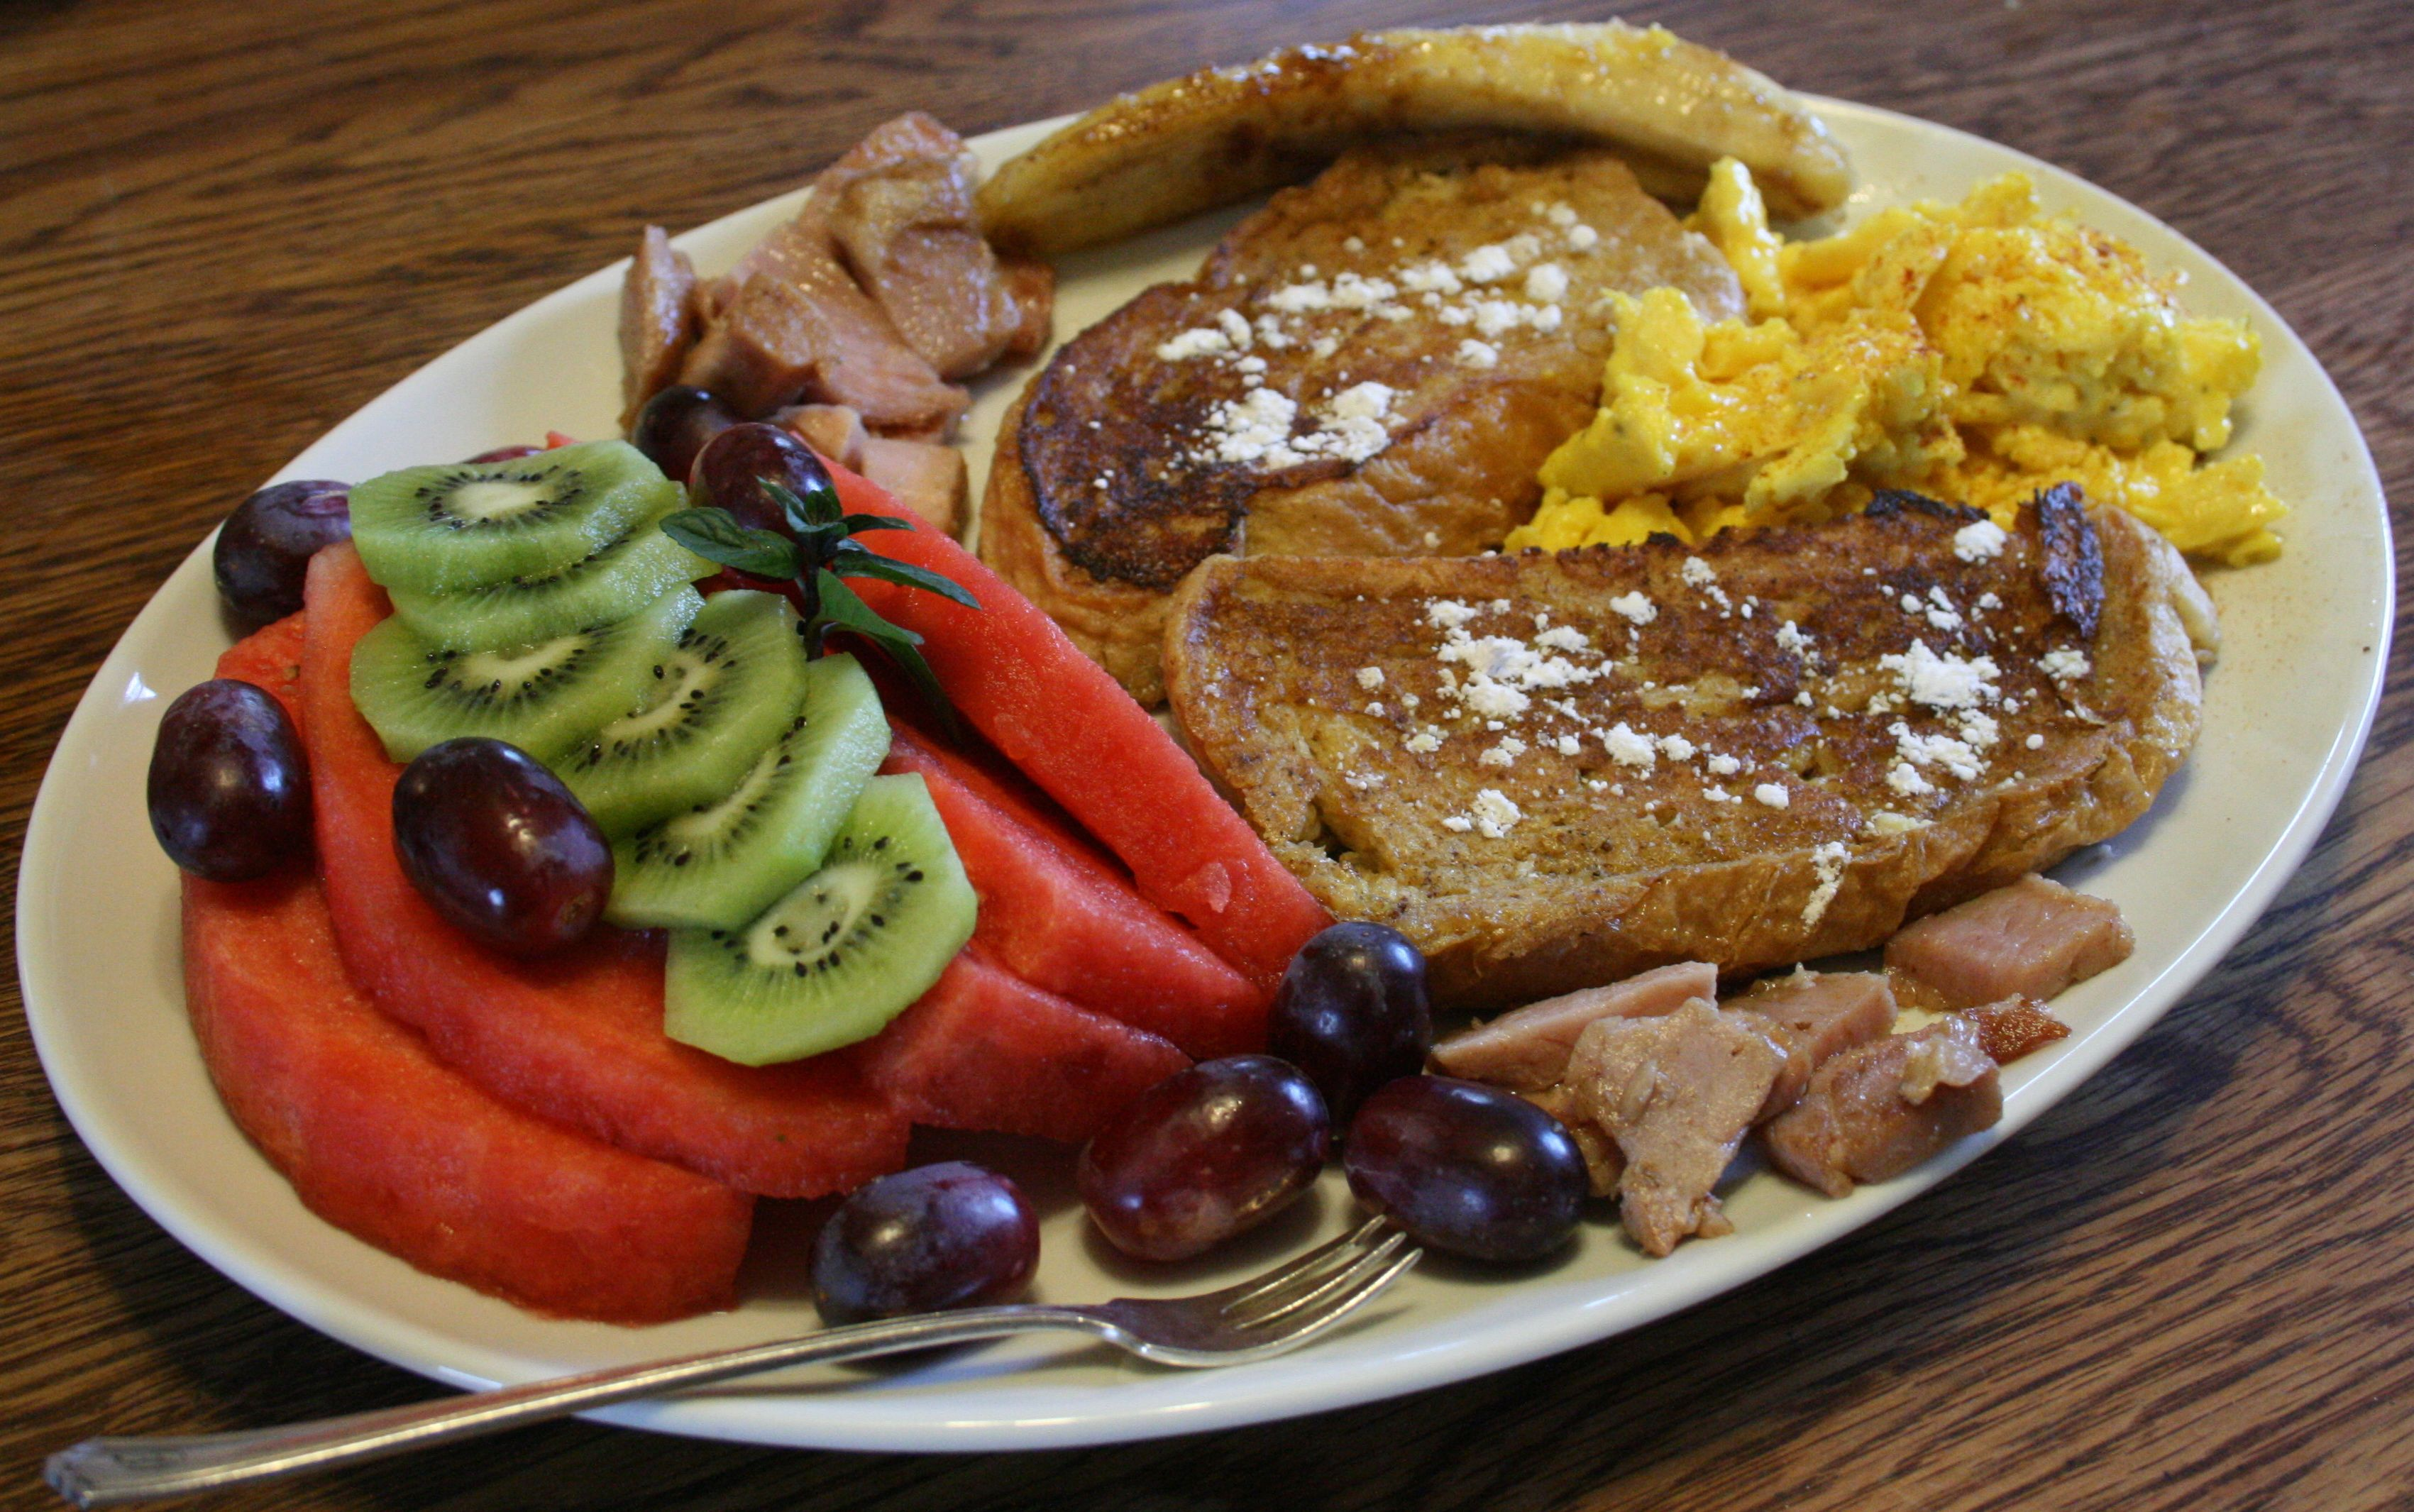 French toast is one of Fran's specialties!